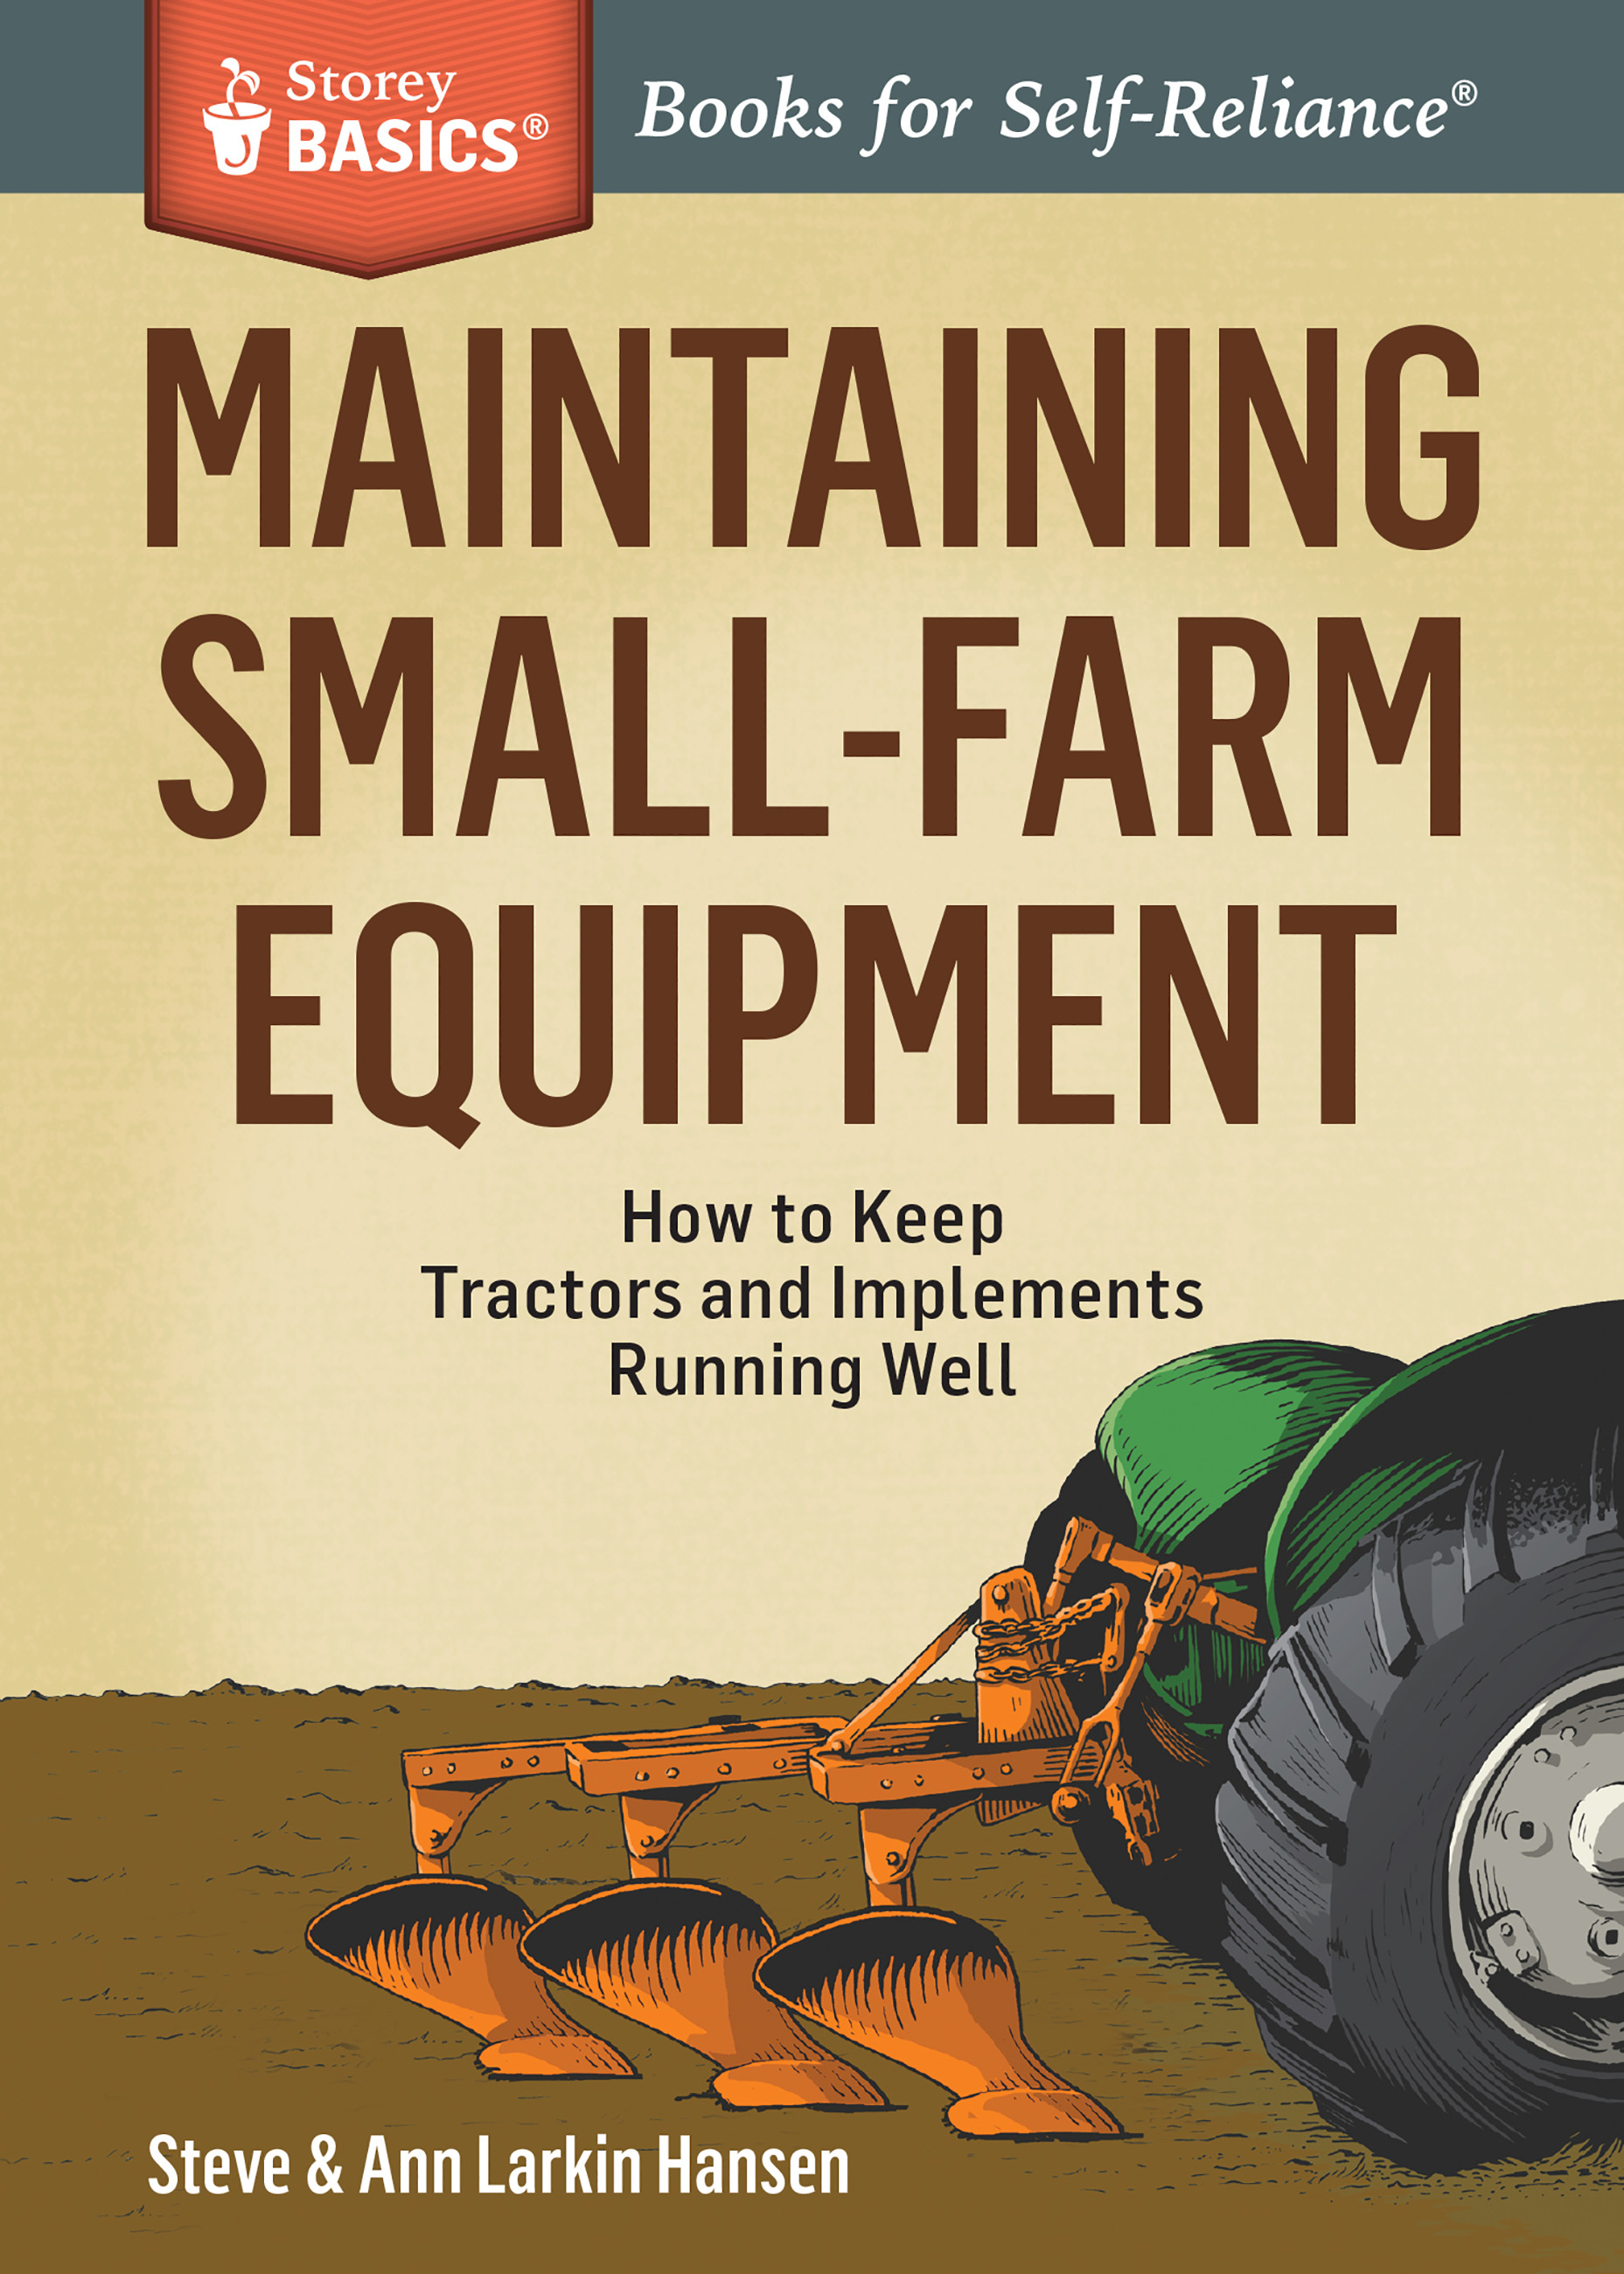 Maintaining Small-Farm Equipment How to Keep Tractors and Implements Running Well. A Storey BASICS® Title